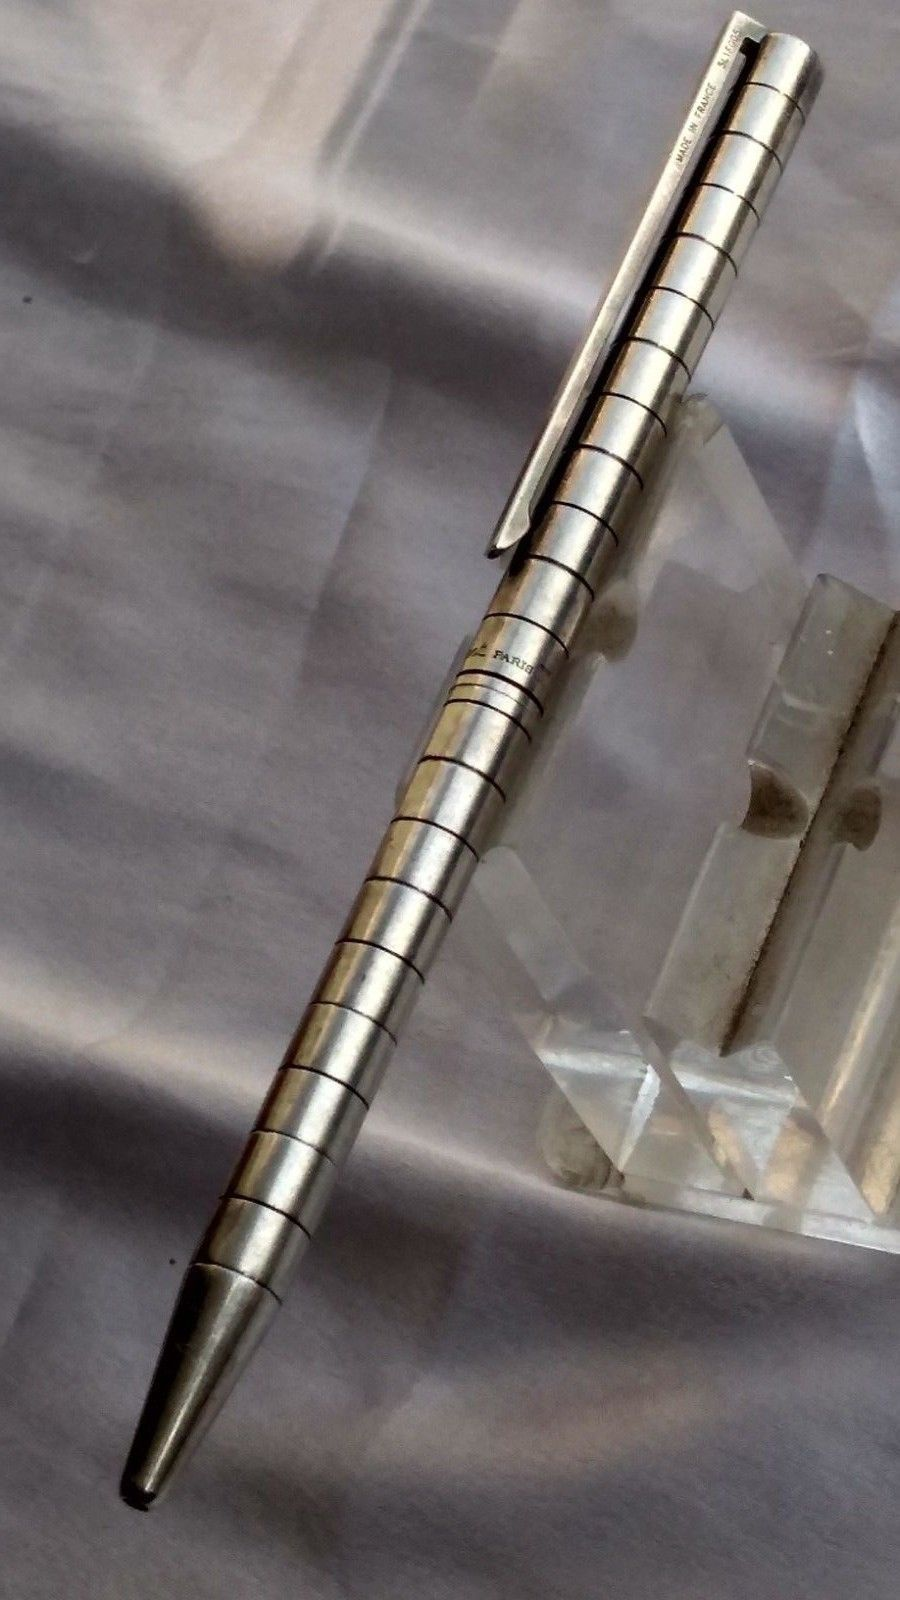 Vintage S.T. Dupont classic silver Ball point pen